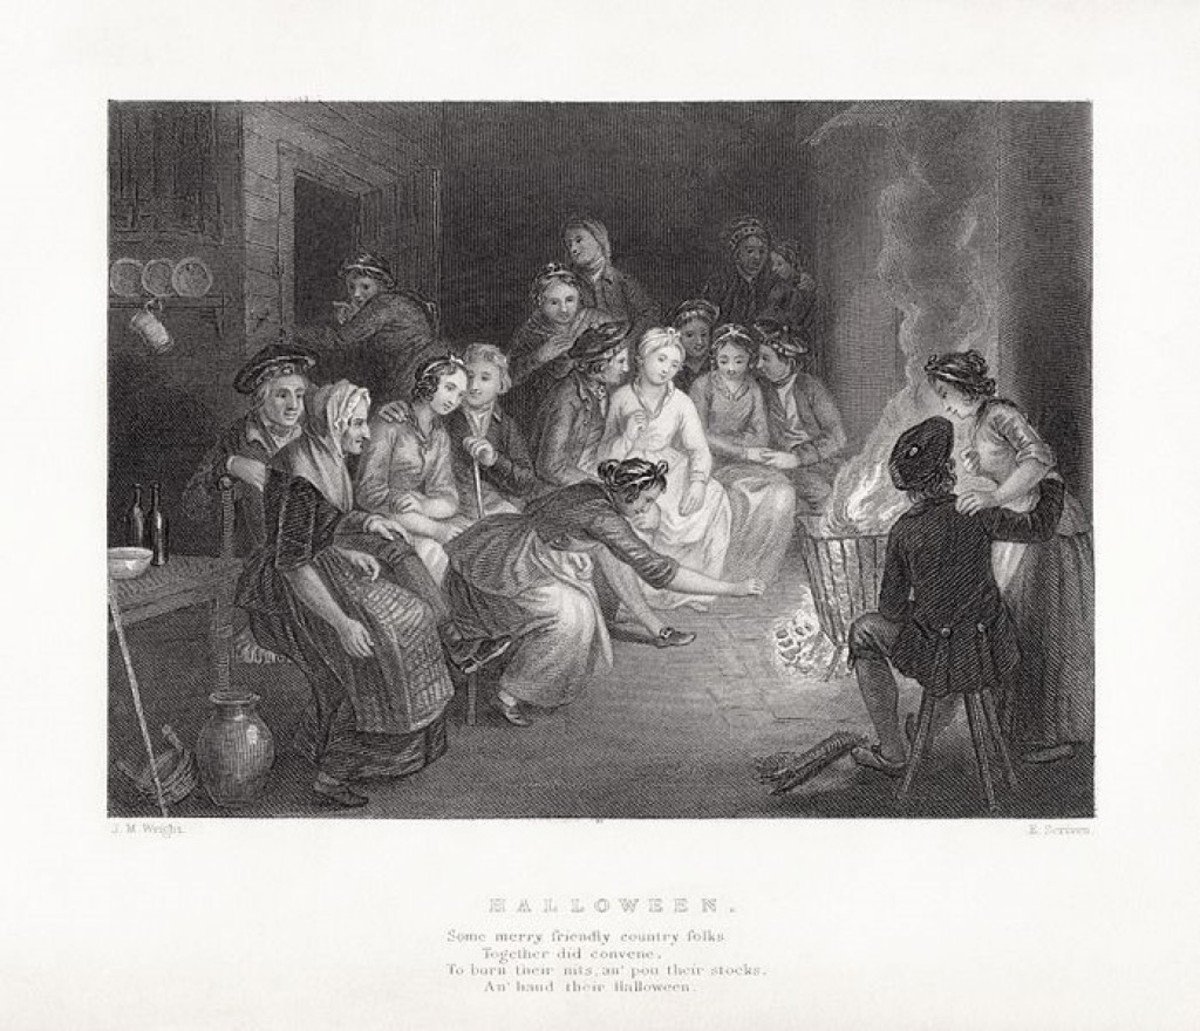 Illustration of Robert Burns' Halloween by J.M. Wright and Edward Scriven